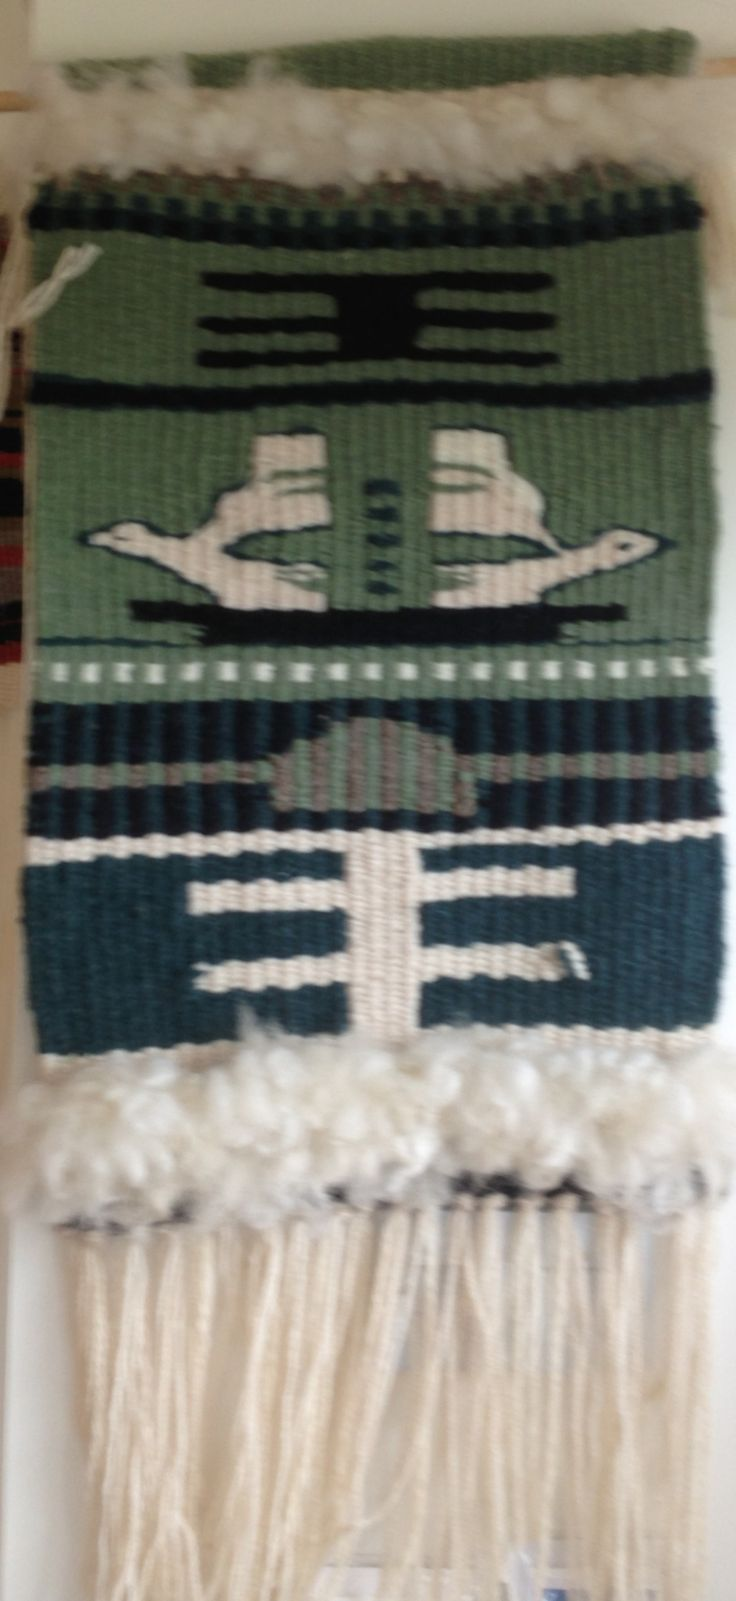 Green Navajo inspired wall hanging featuring white doves by Jackie Maddocks at Melin Trefin, Trefin, Pembrokeshire. www.melintrefin.co.uk